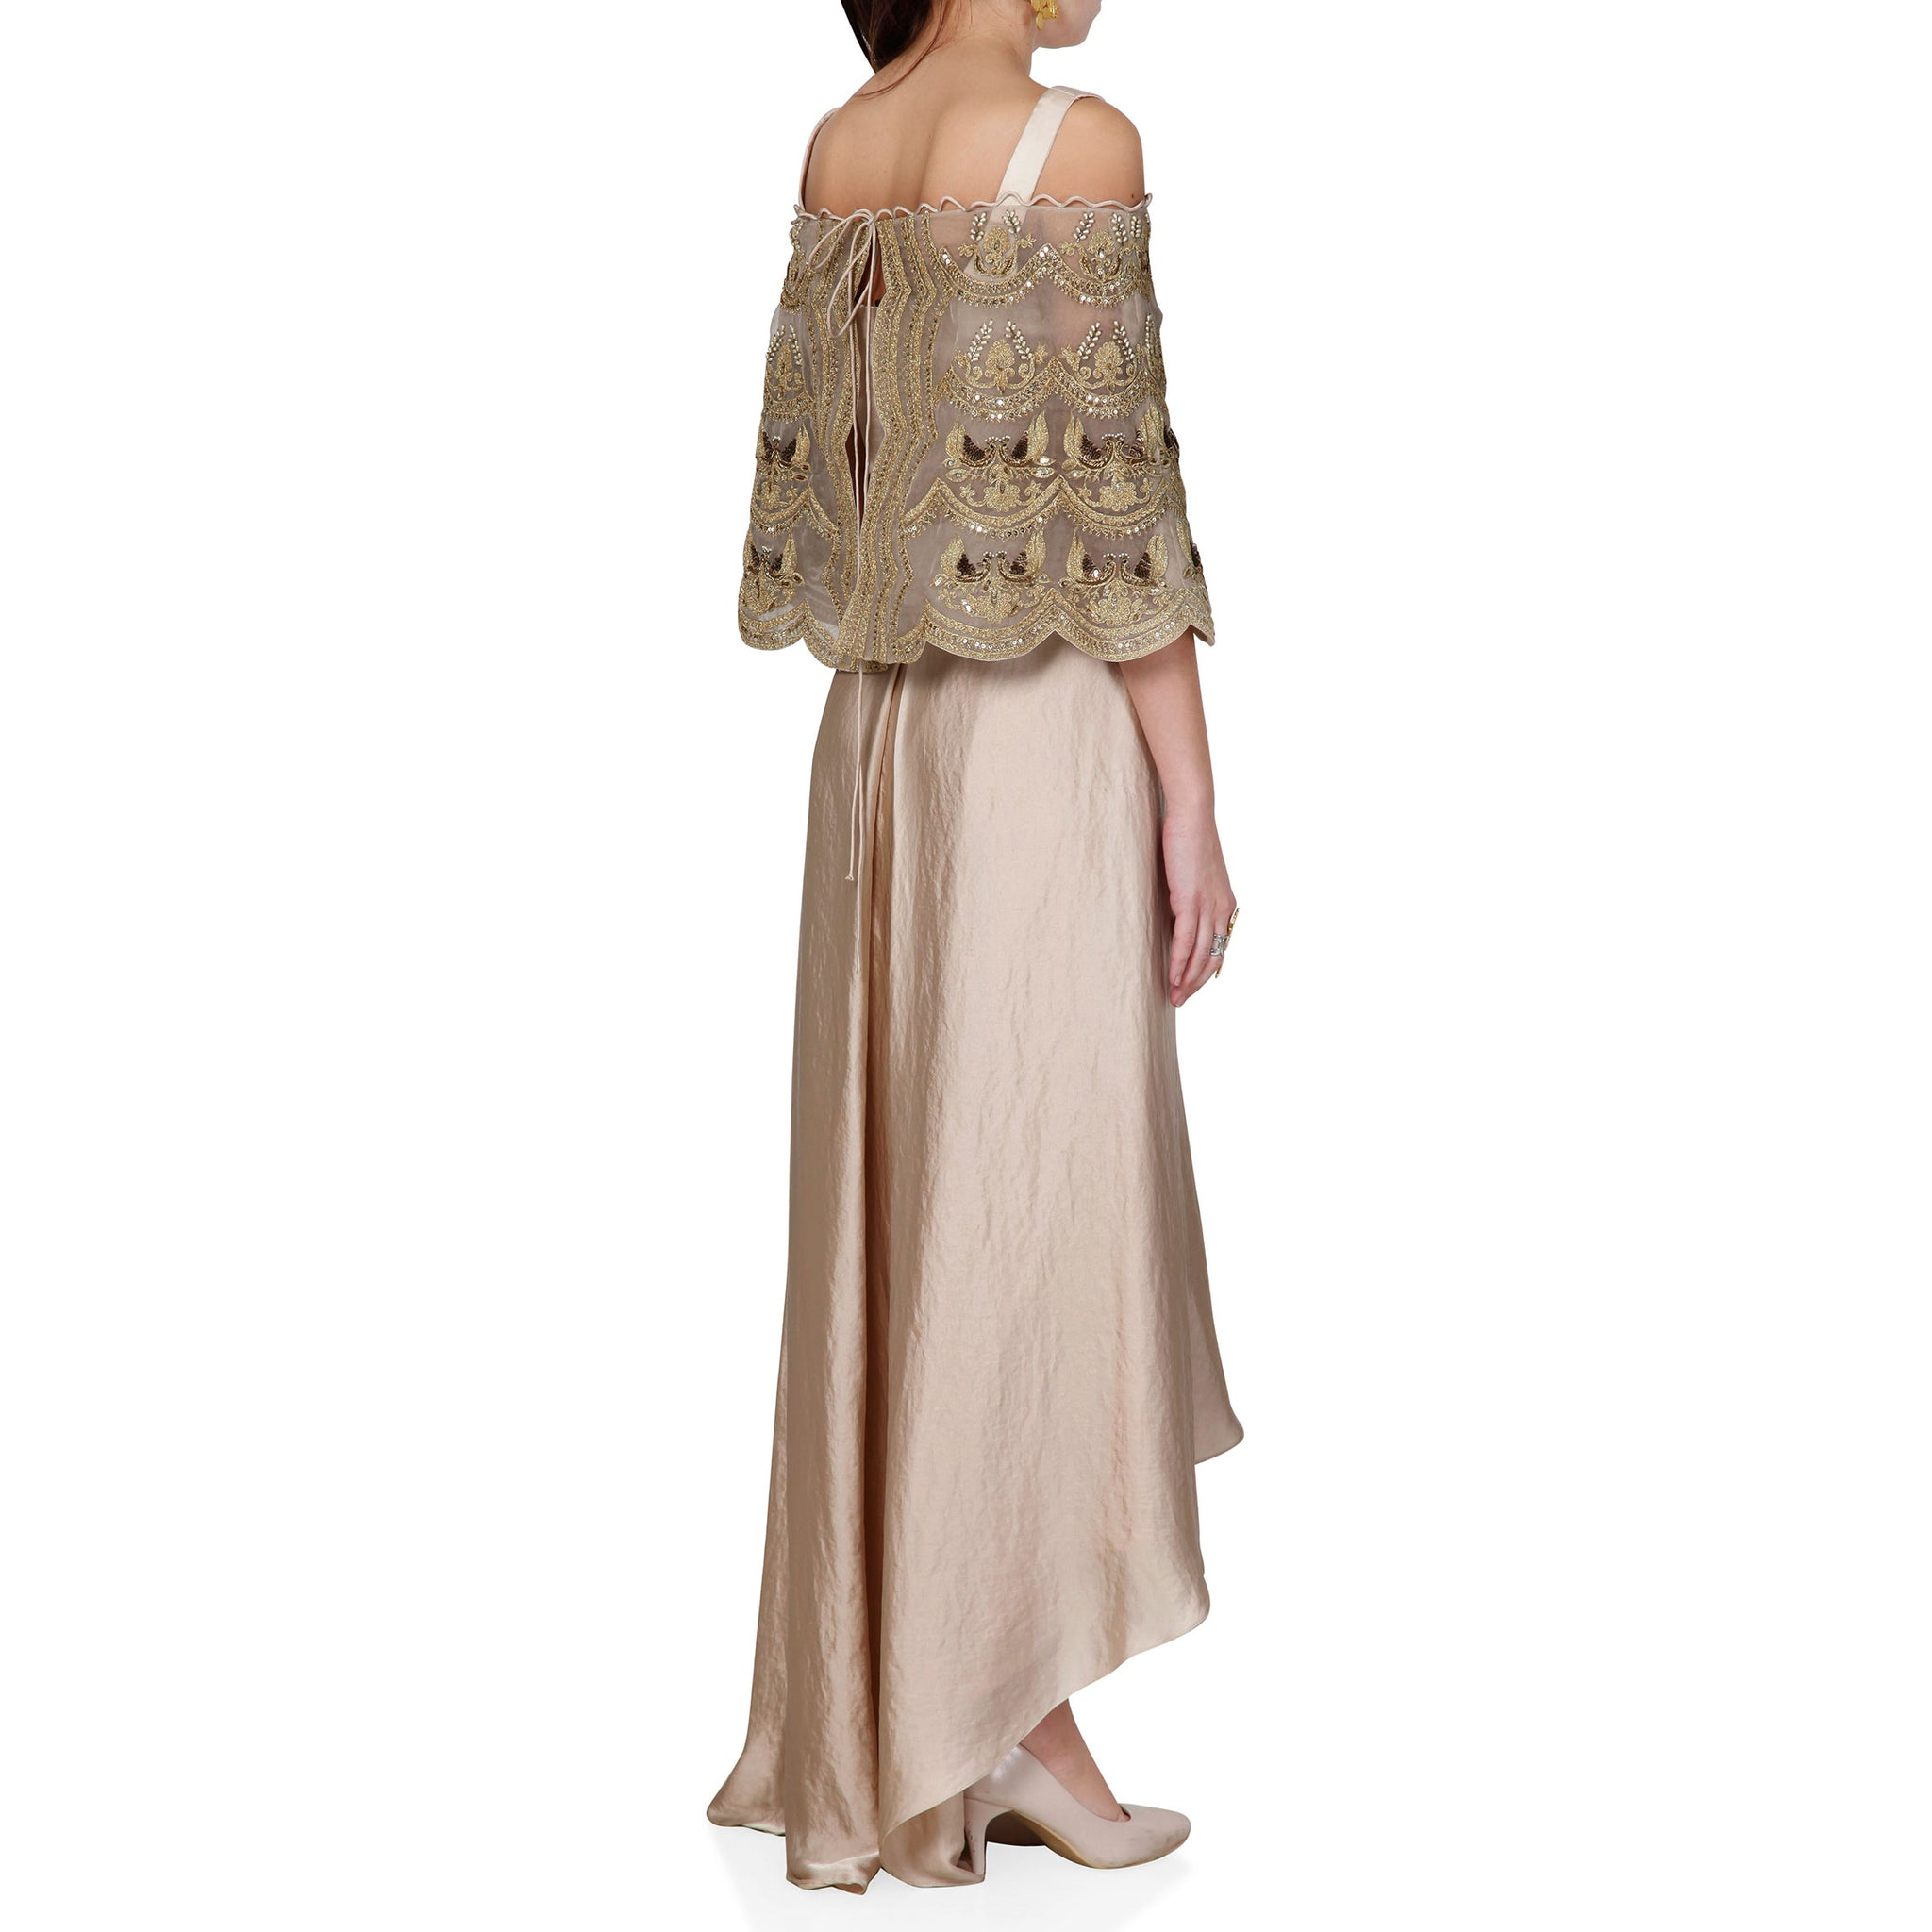 Embroidered Cape with Blouse and Draped Skirt